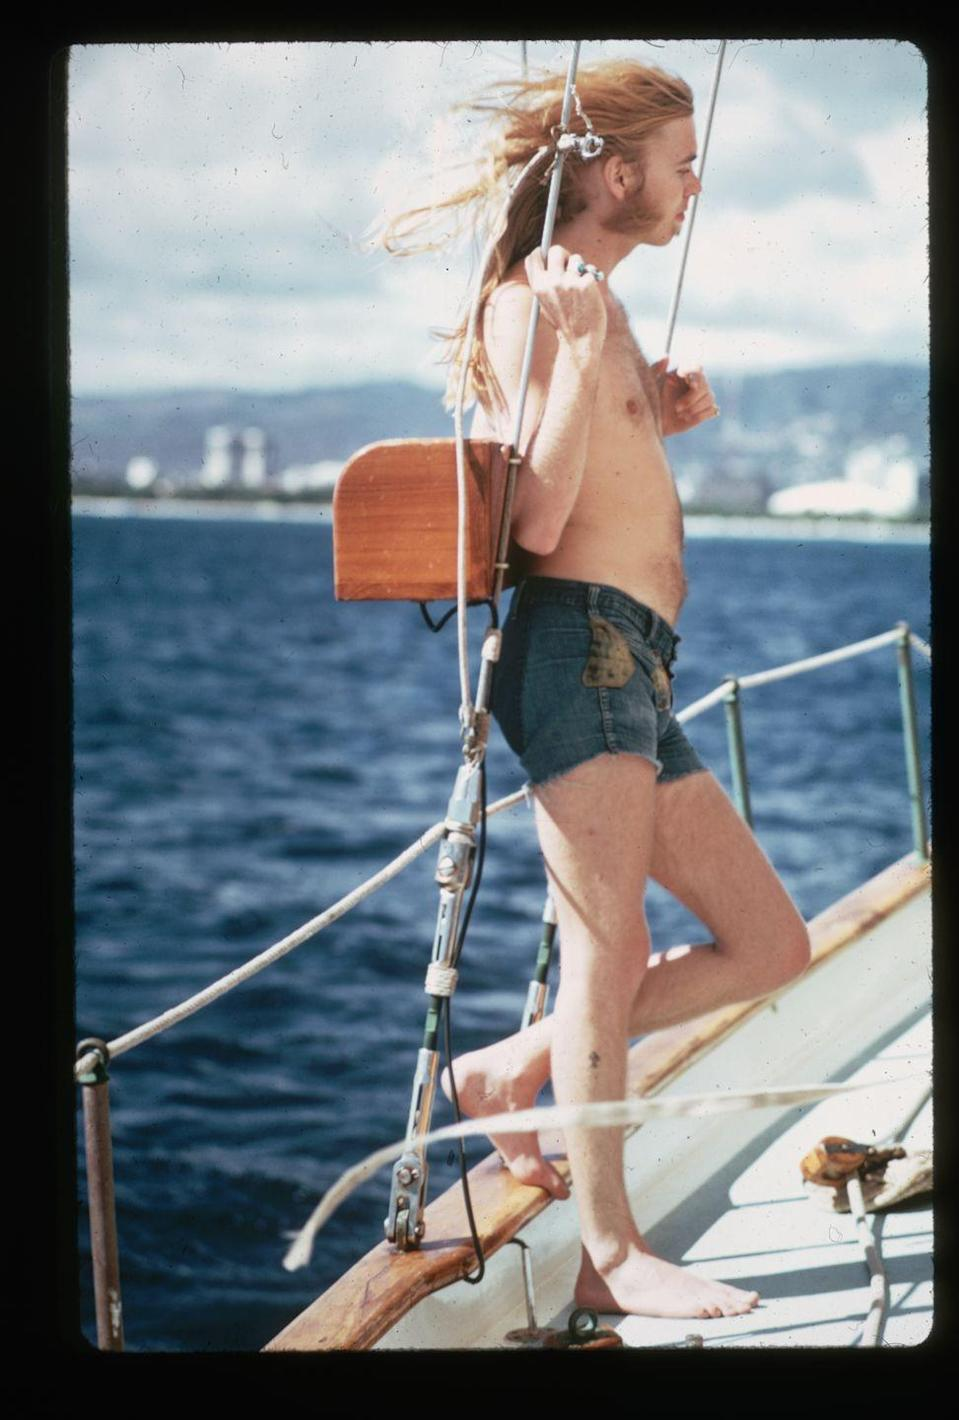 <p>A shirtless Gregg Allman leans against the ropes on a boat in 1974.</p>